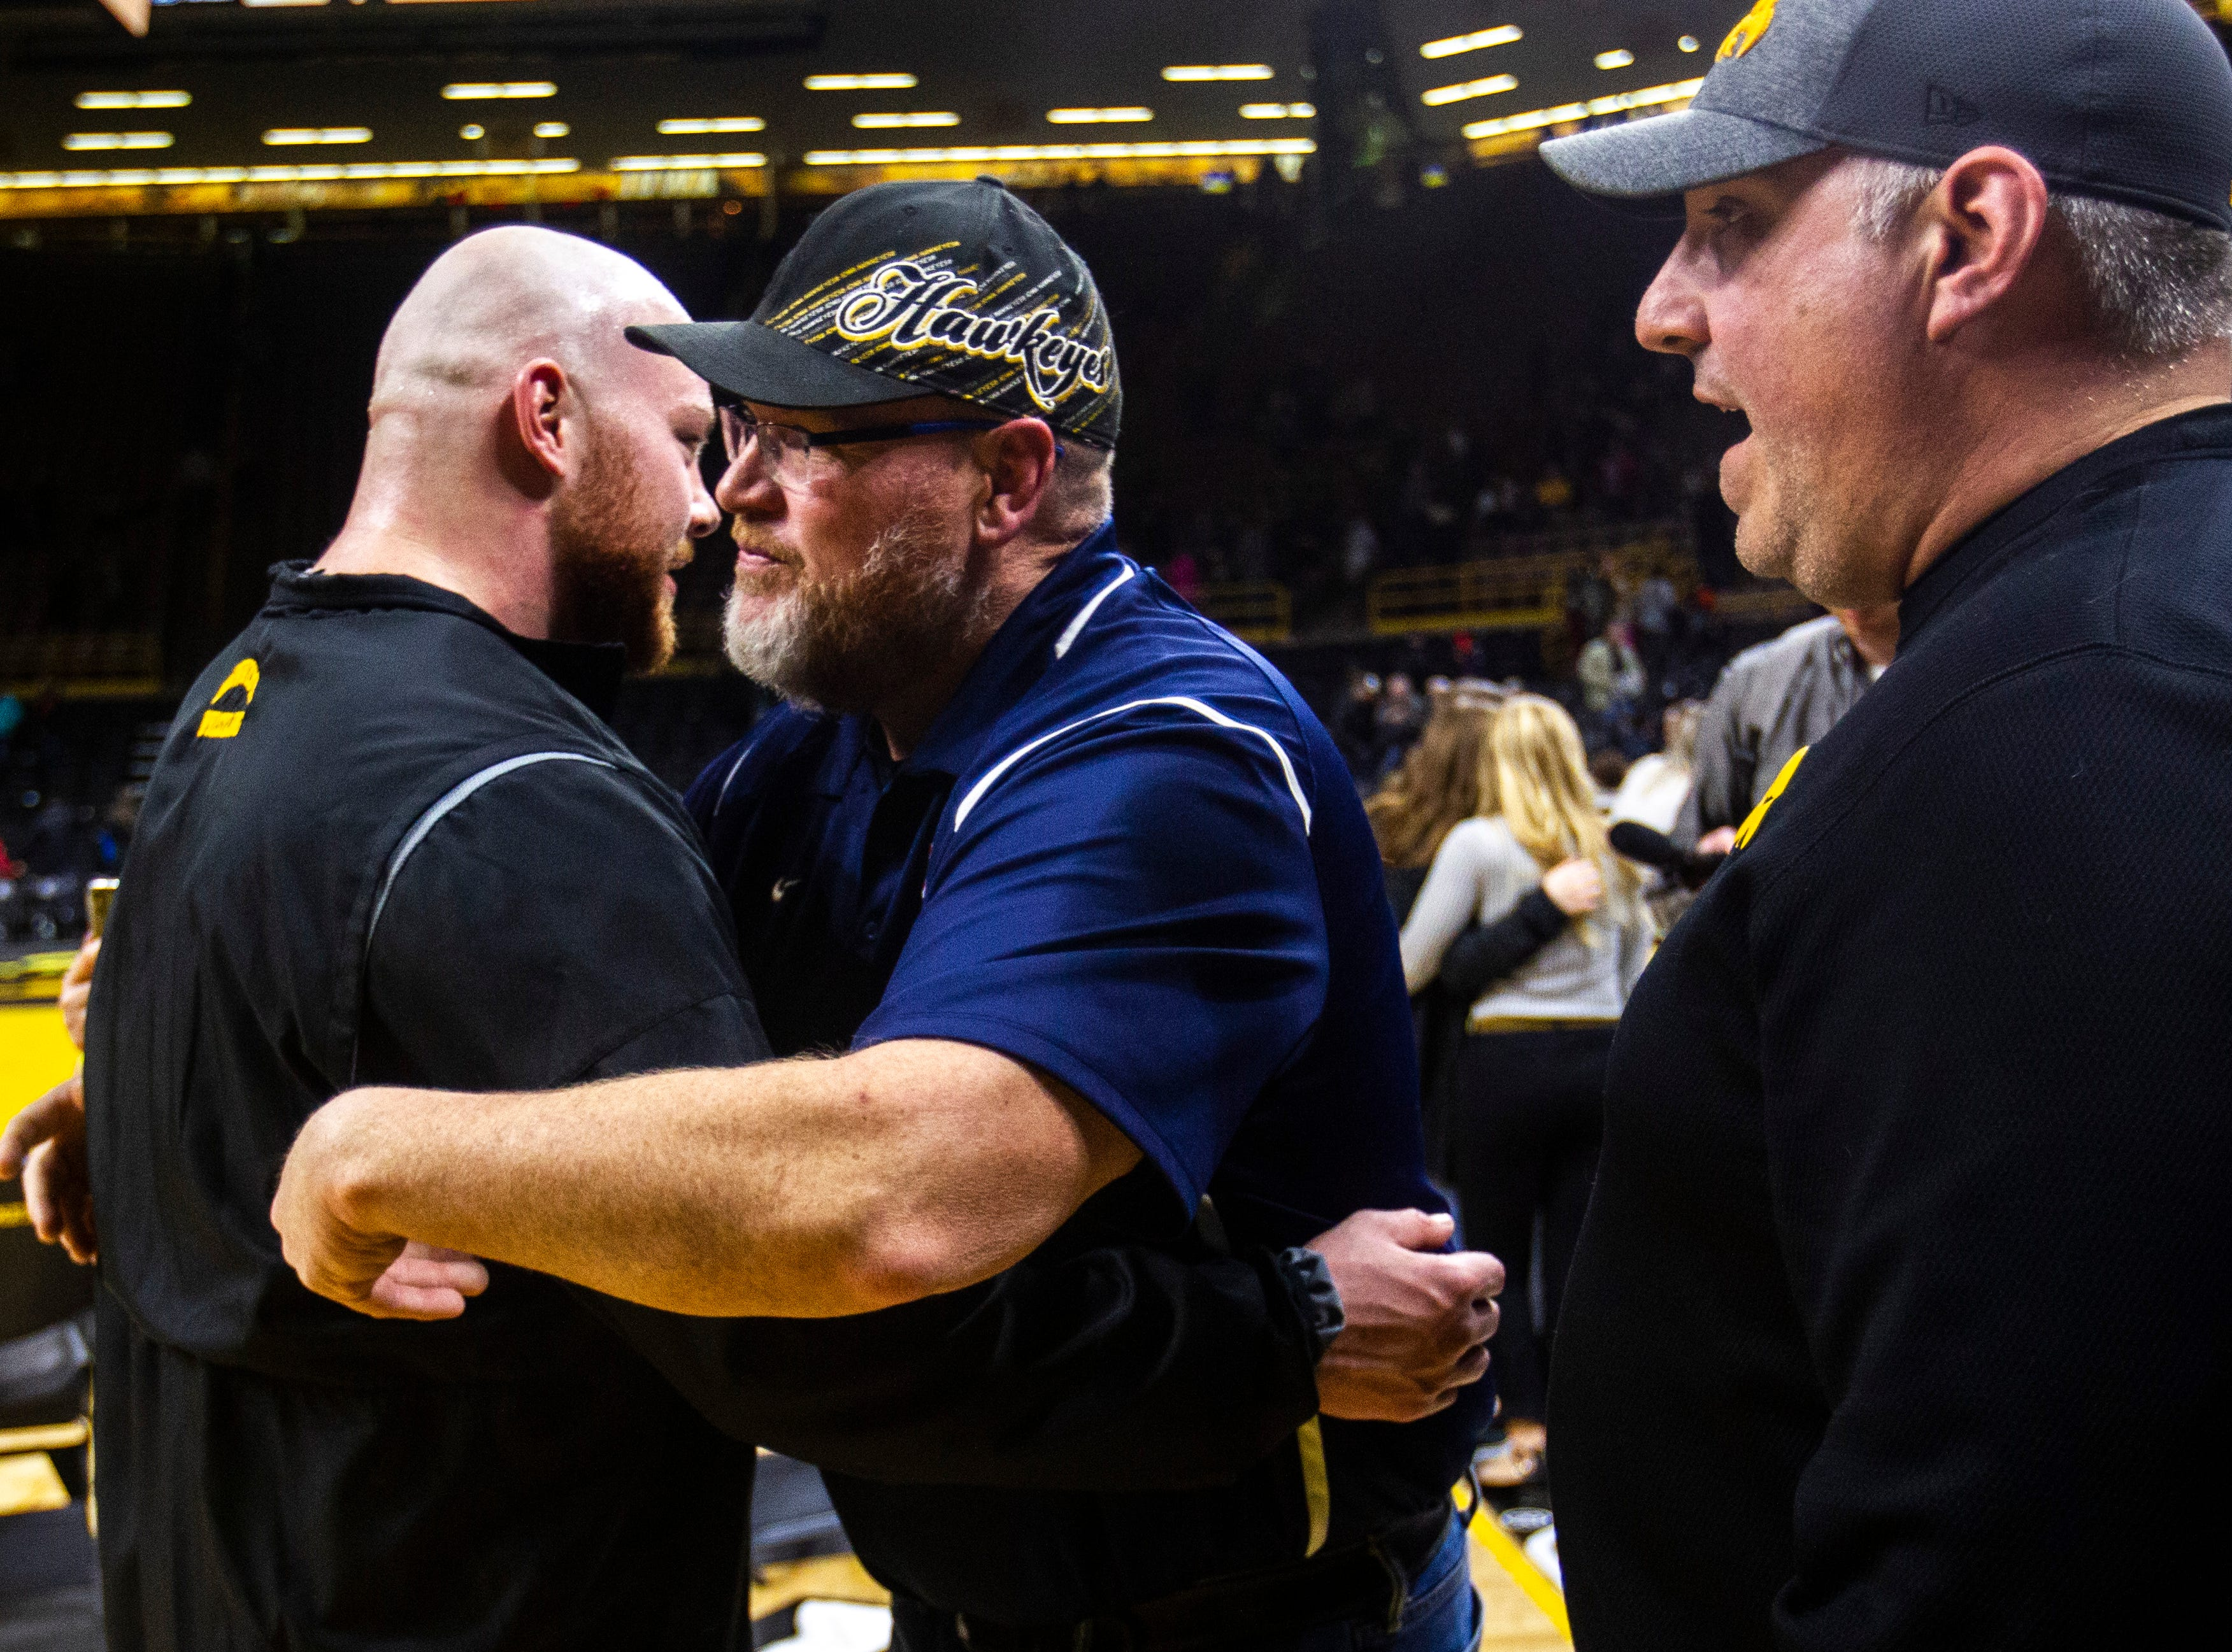 Iowa senior 285-pounder Sam Stoll gets a hug from family members after a NCAA Big Ten Conference wrestling dual on Friday, Feb. 15, 2019 at Carver-Hawkeye Arena in Iowa City, Iowa.